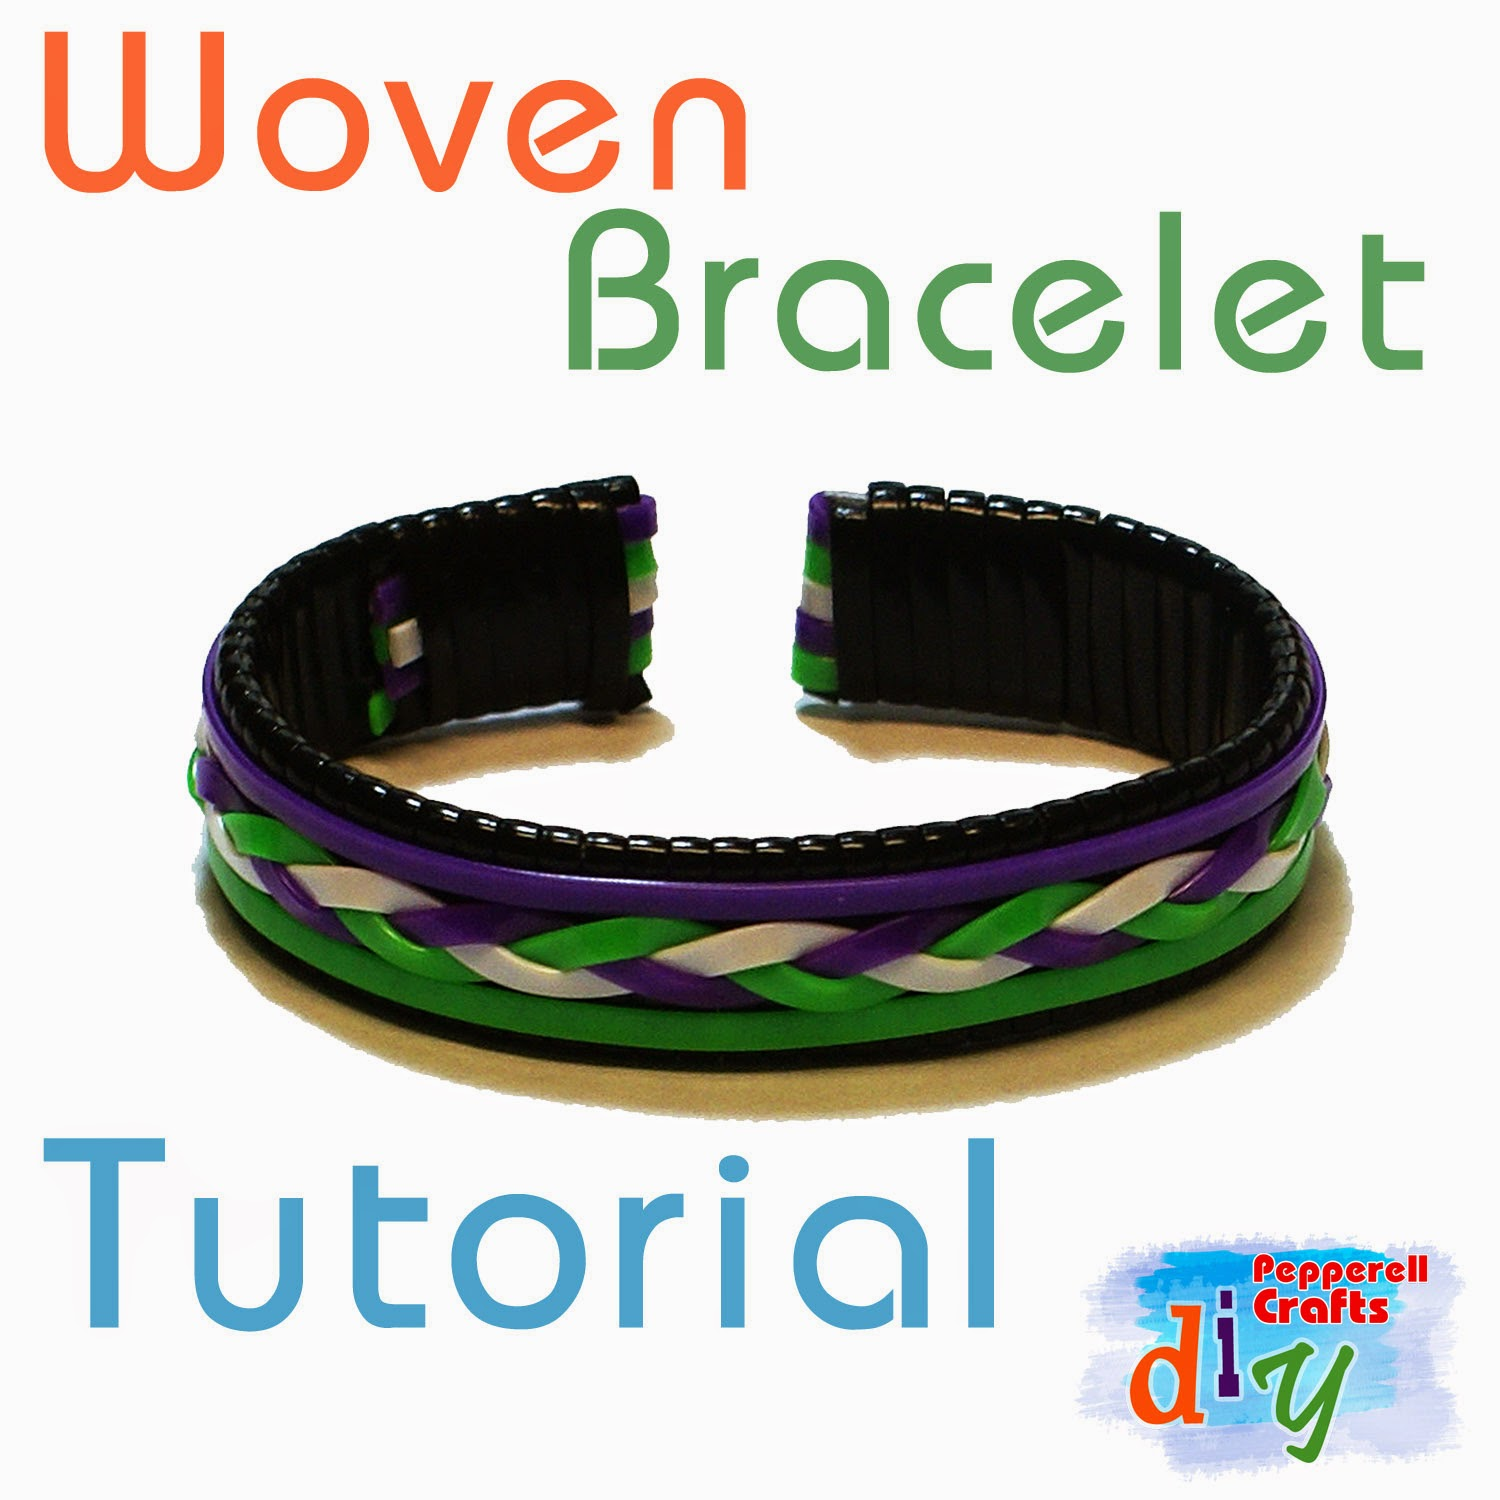 Woven Bracelet Tutorial - Pepperell Braiding Company